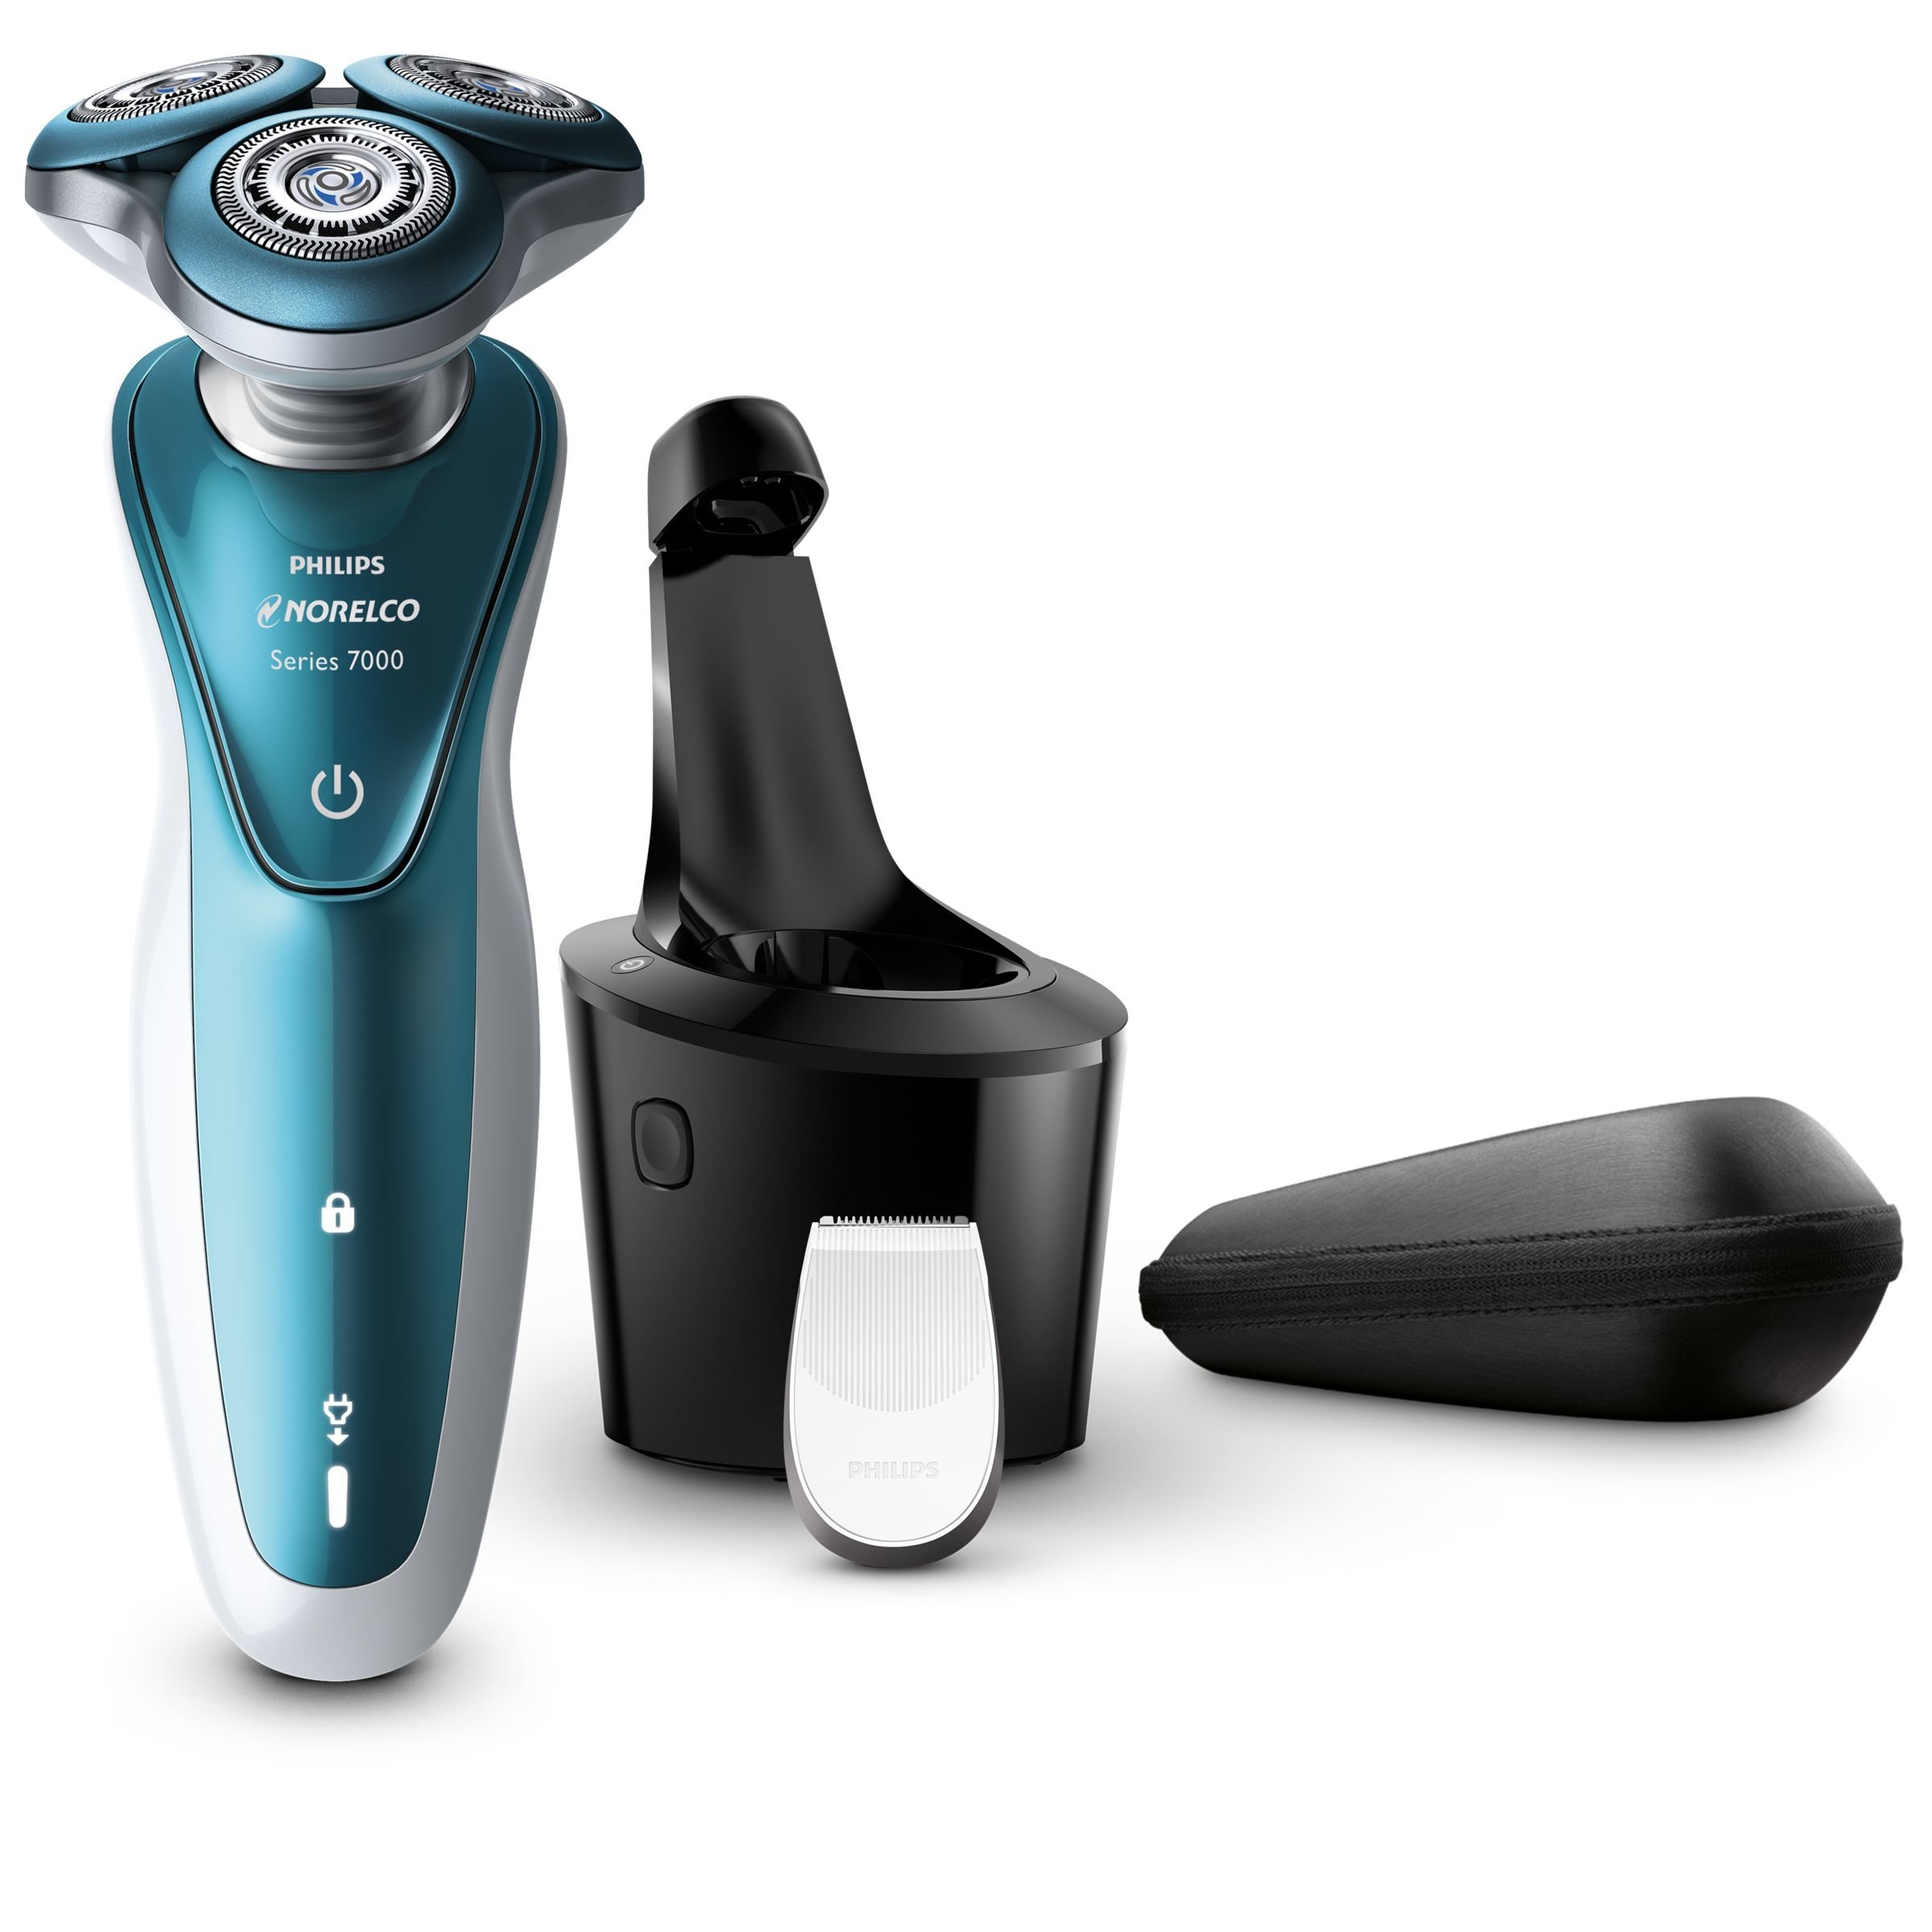 Philips Norelco Electric Shaver 7500 for Sensitive Skin by Philips Norelco (Image #2)